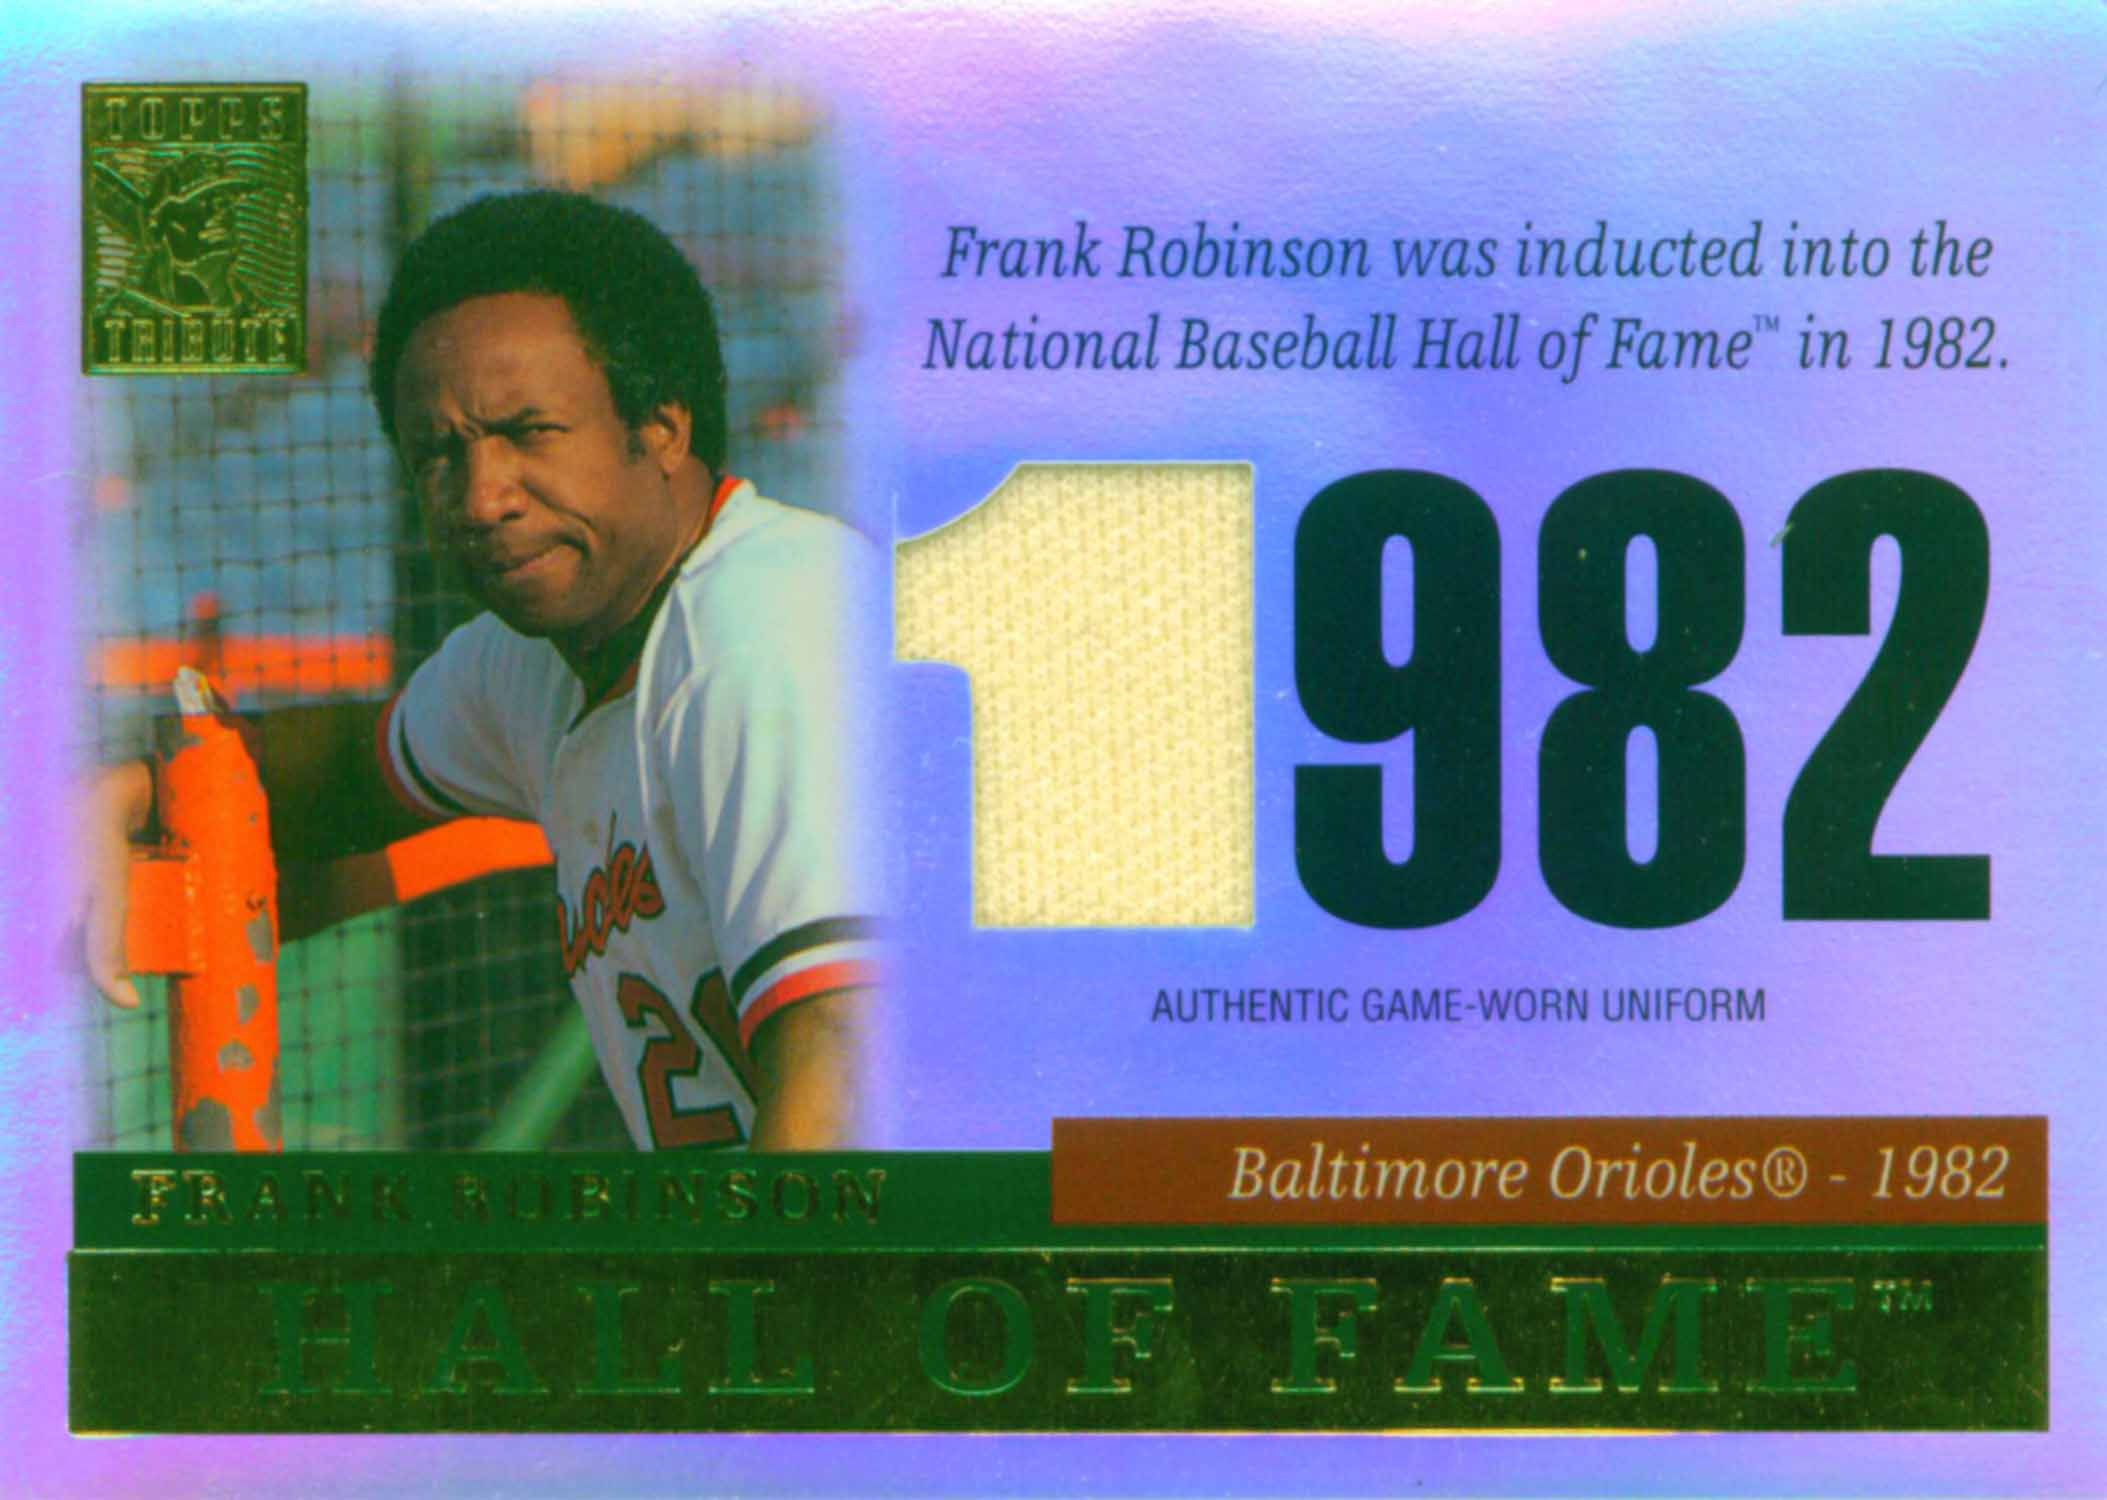 2004 Topps Tribute Hall of Fame Relics Uniform